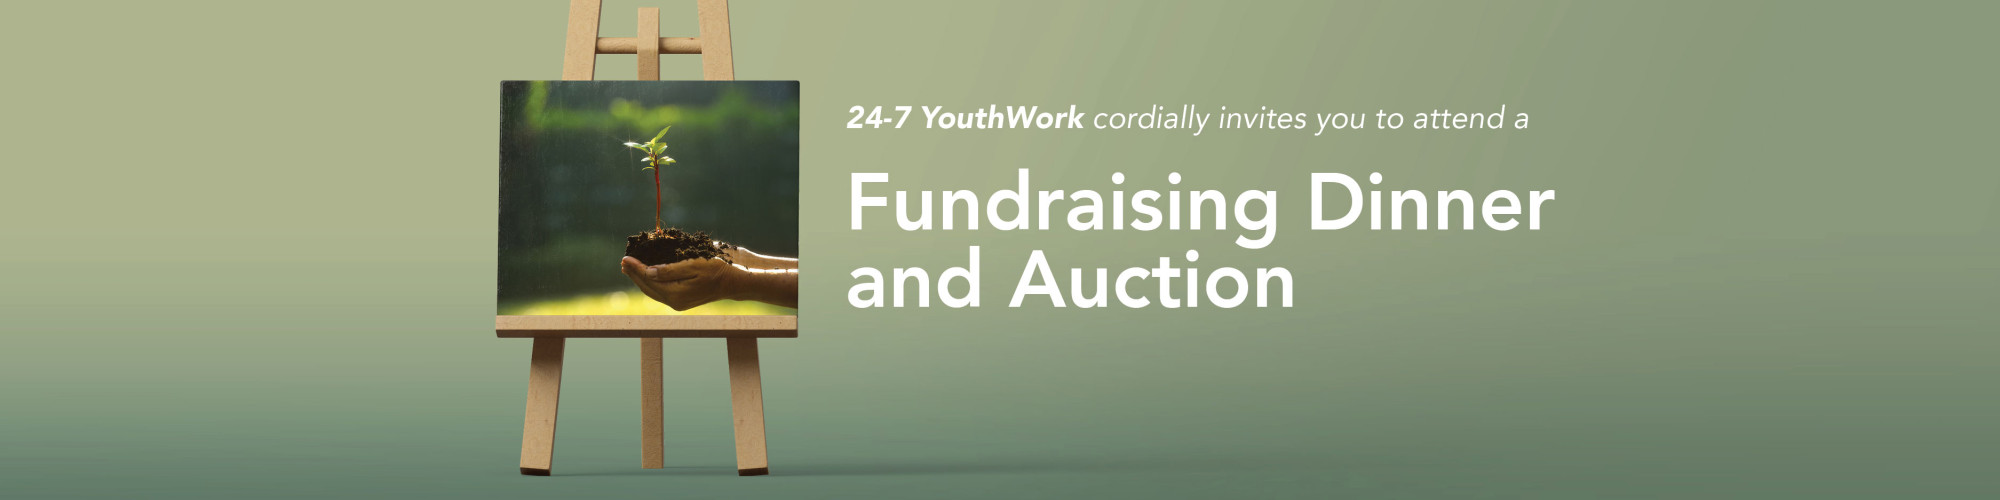 http://www.24-7youthwork.org.nz/events/24-7yw-fundraising-dinner/